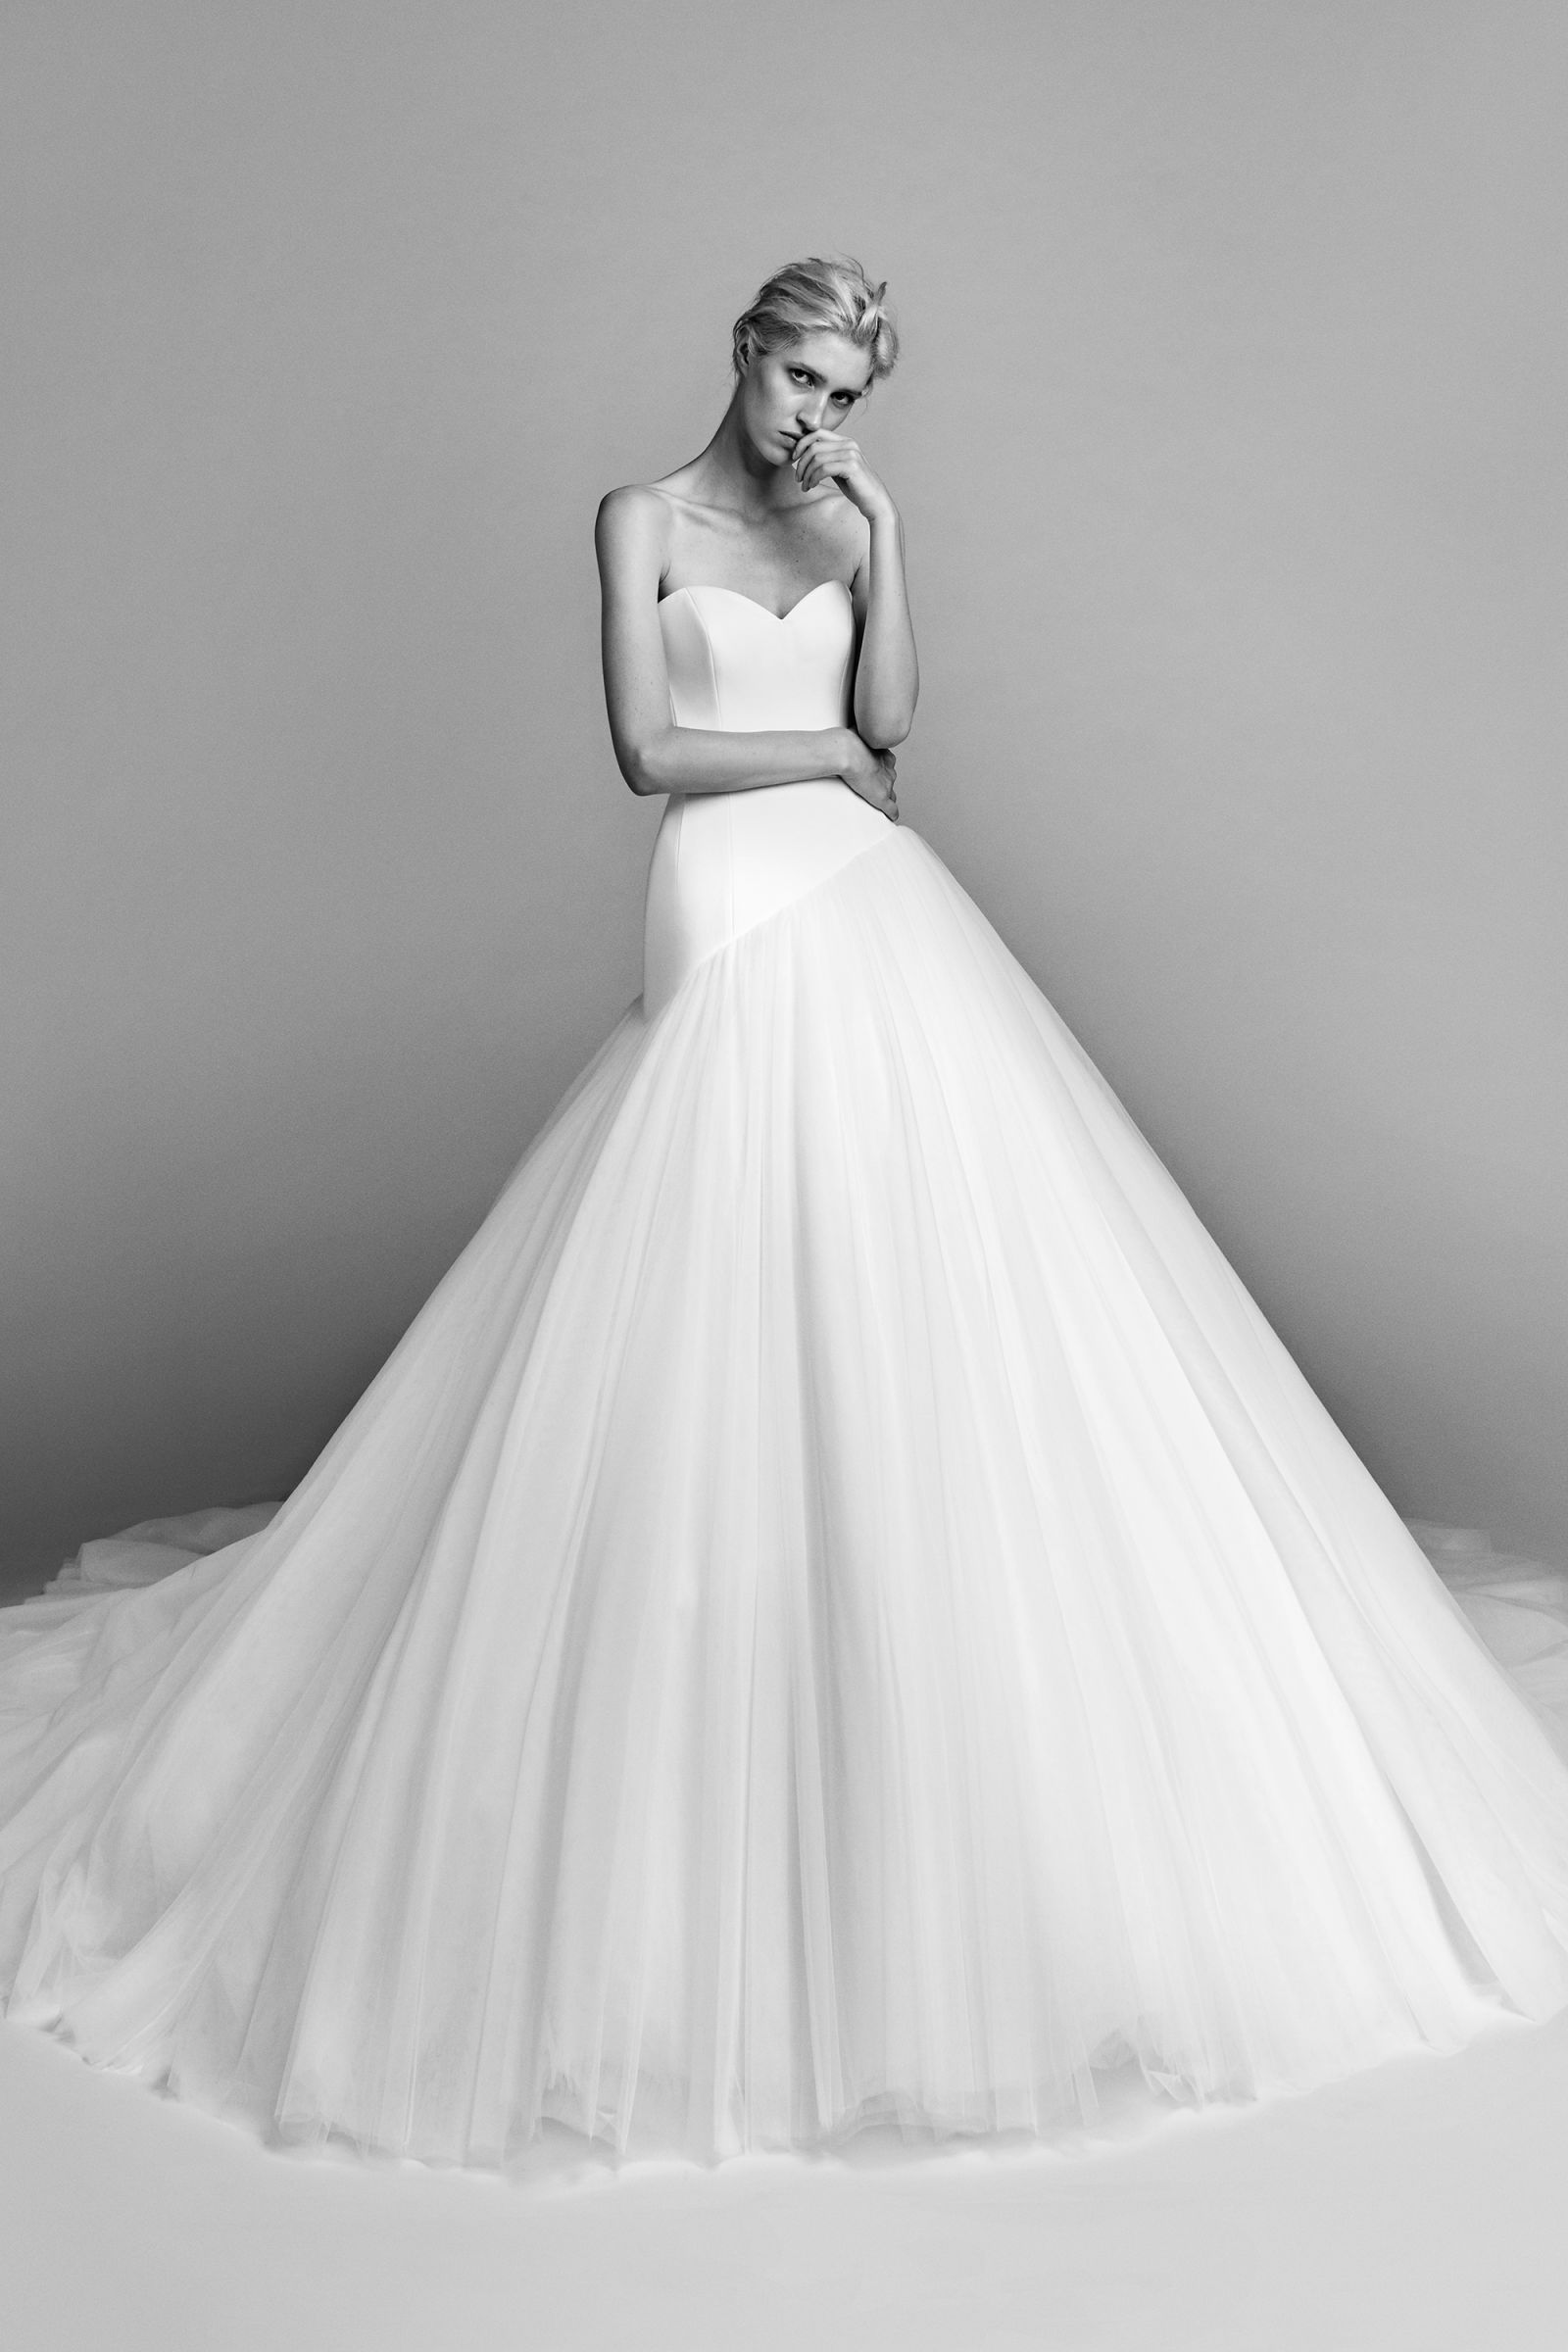 Forum on this topic: Viktor Rolf Debuts a Full Bridal Collection , viktor-rolf-debuts-a-full-bridal-collection/